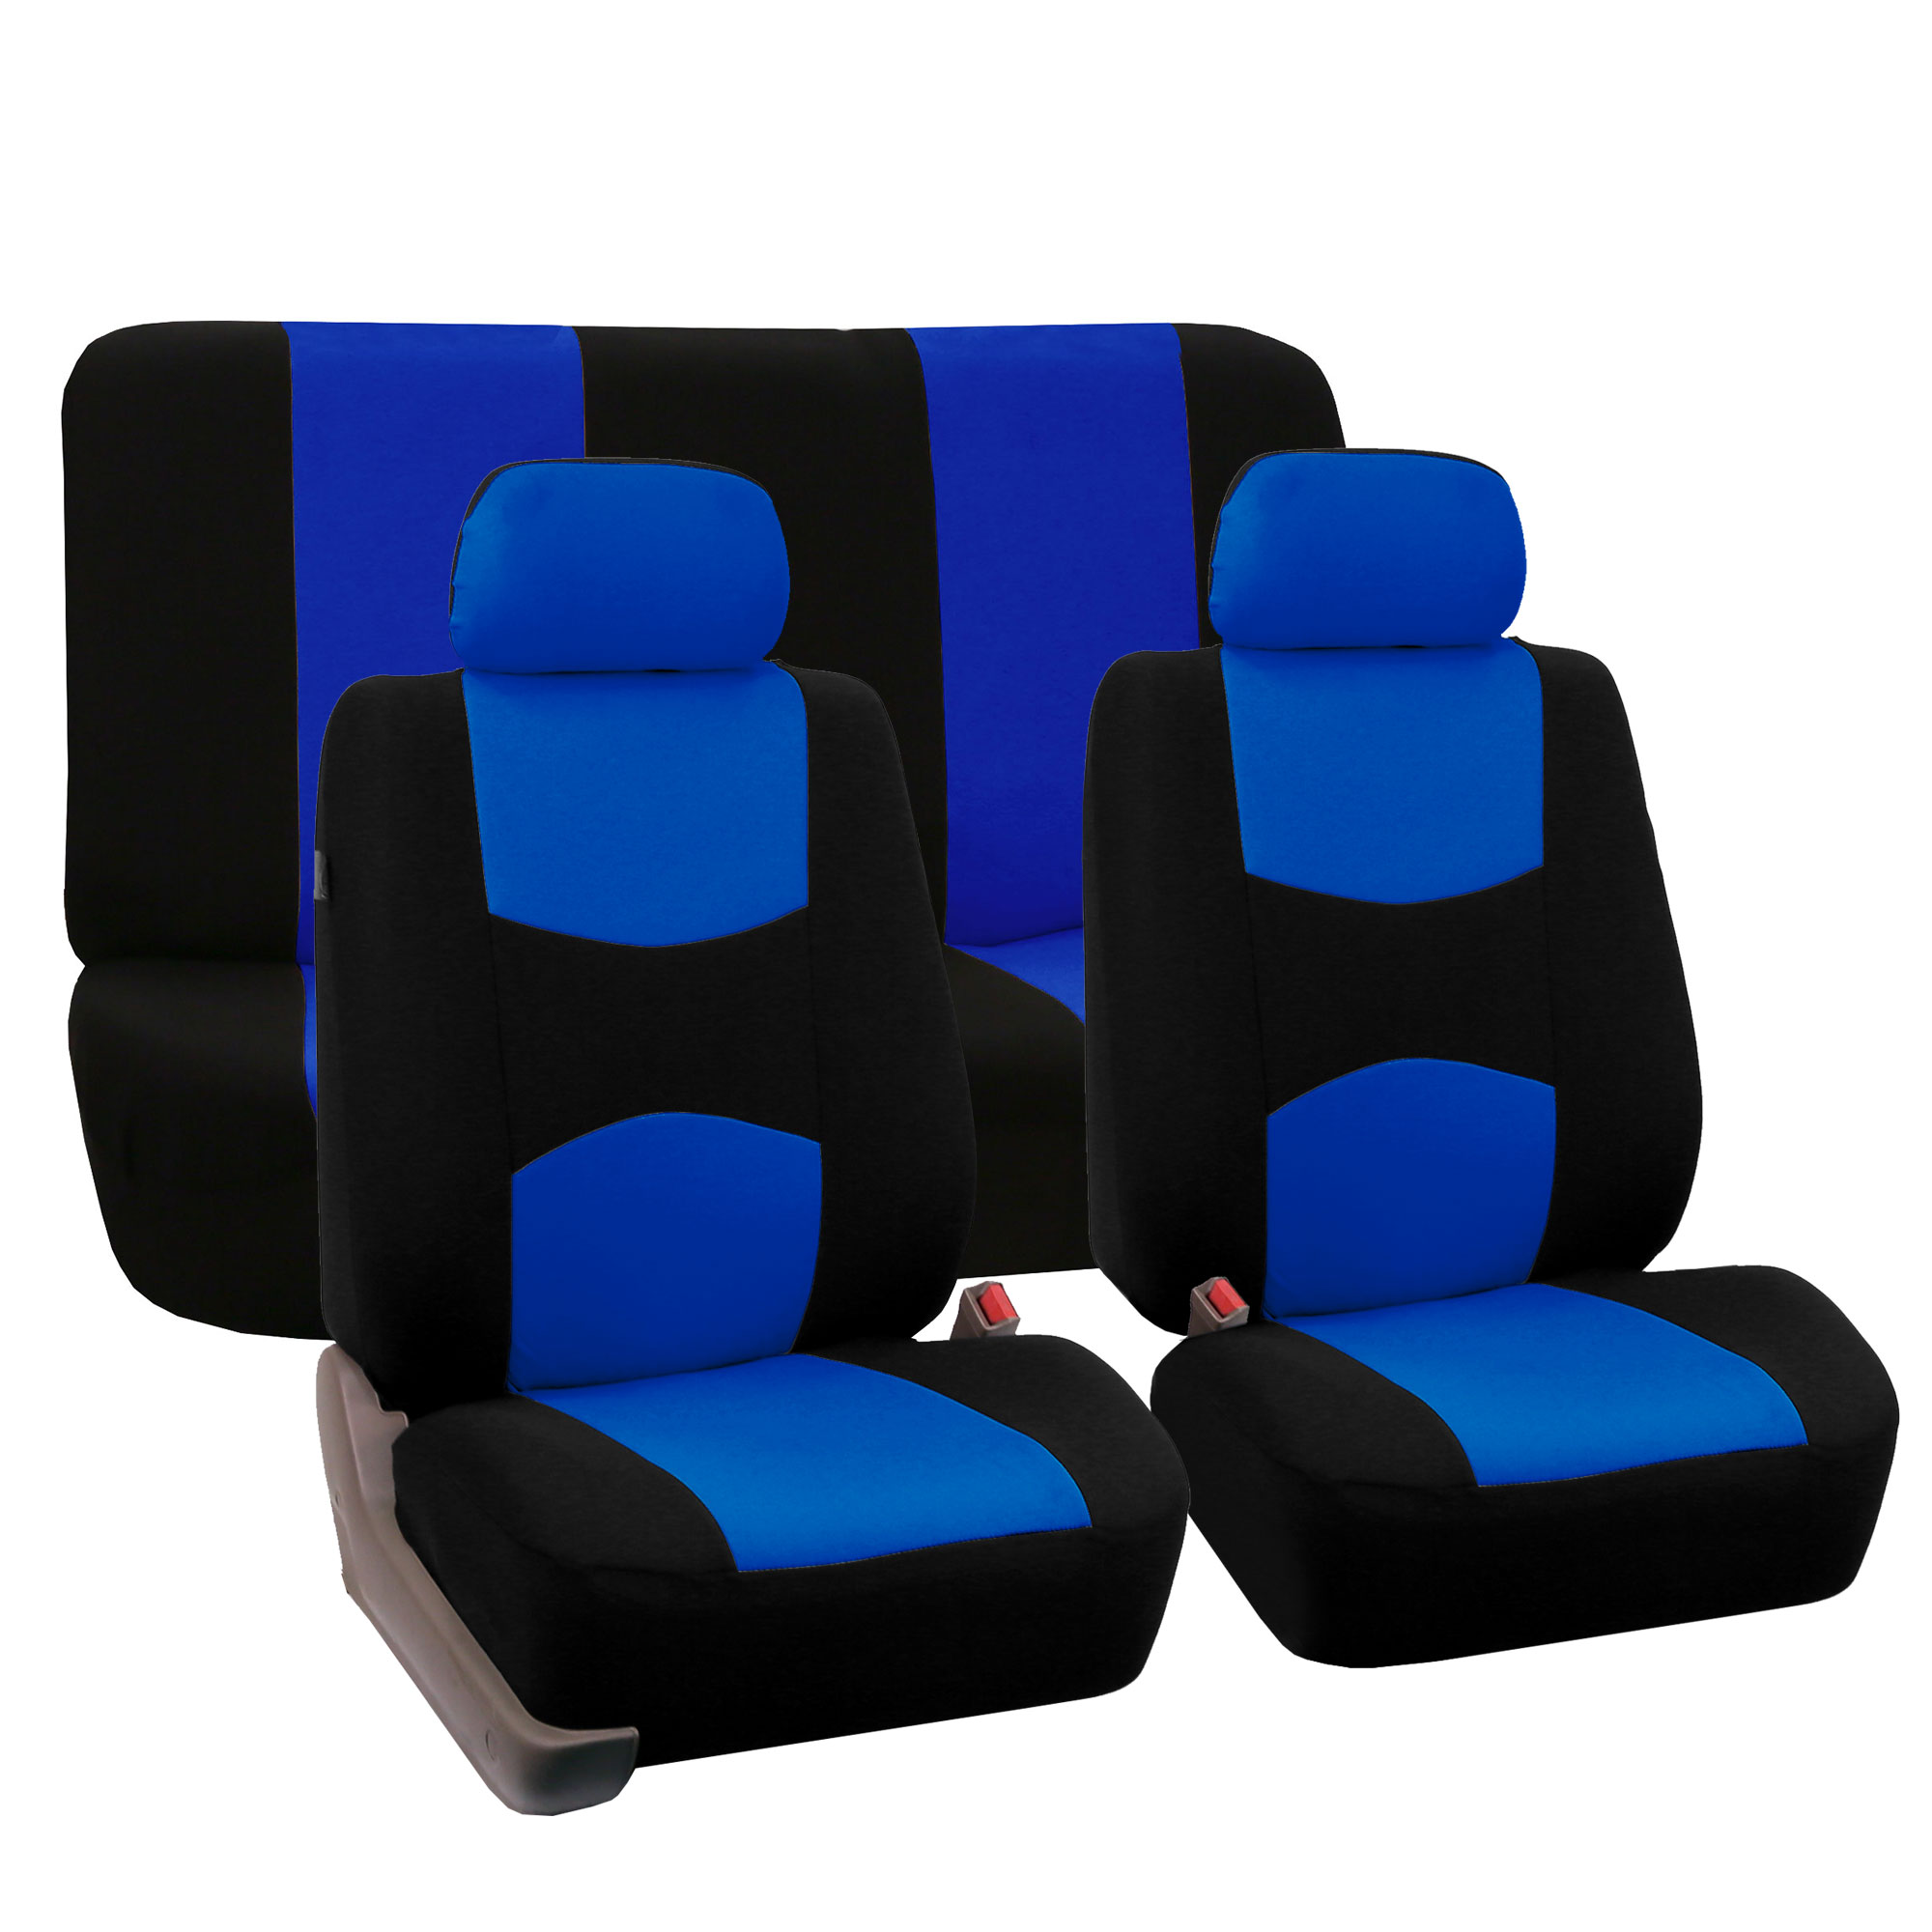 Luxury Sport Car Seat Cover Set Front Rear Blue Black For